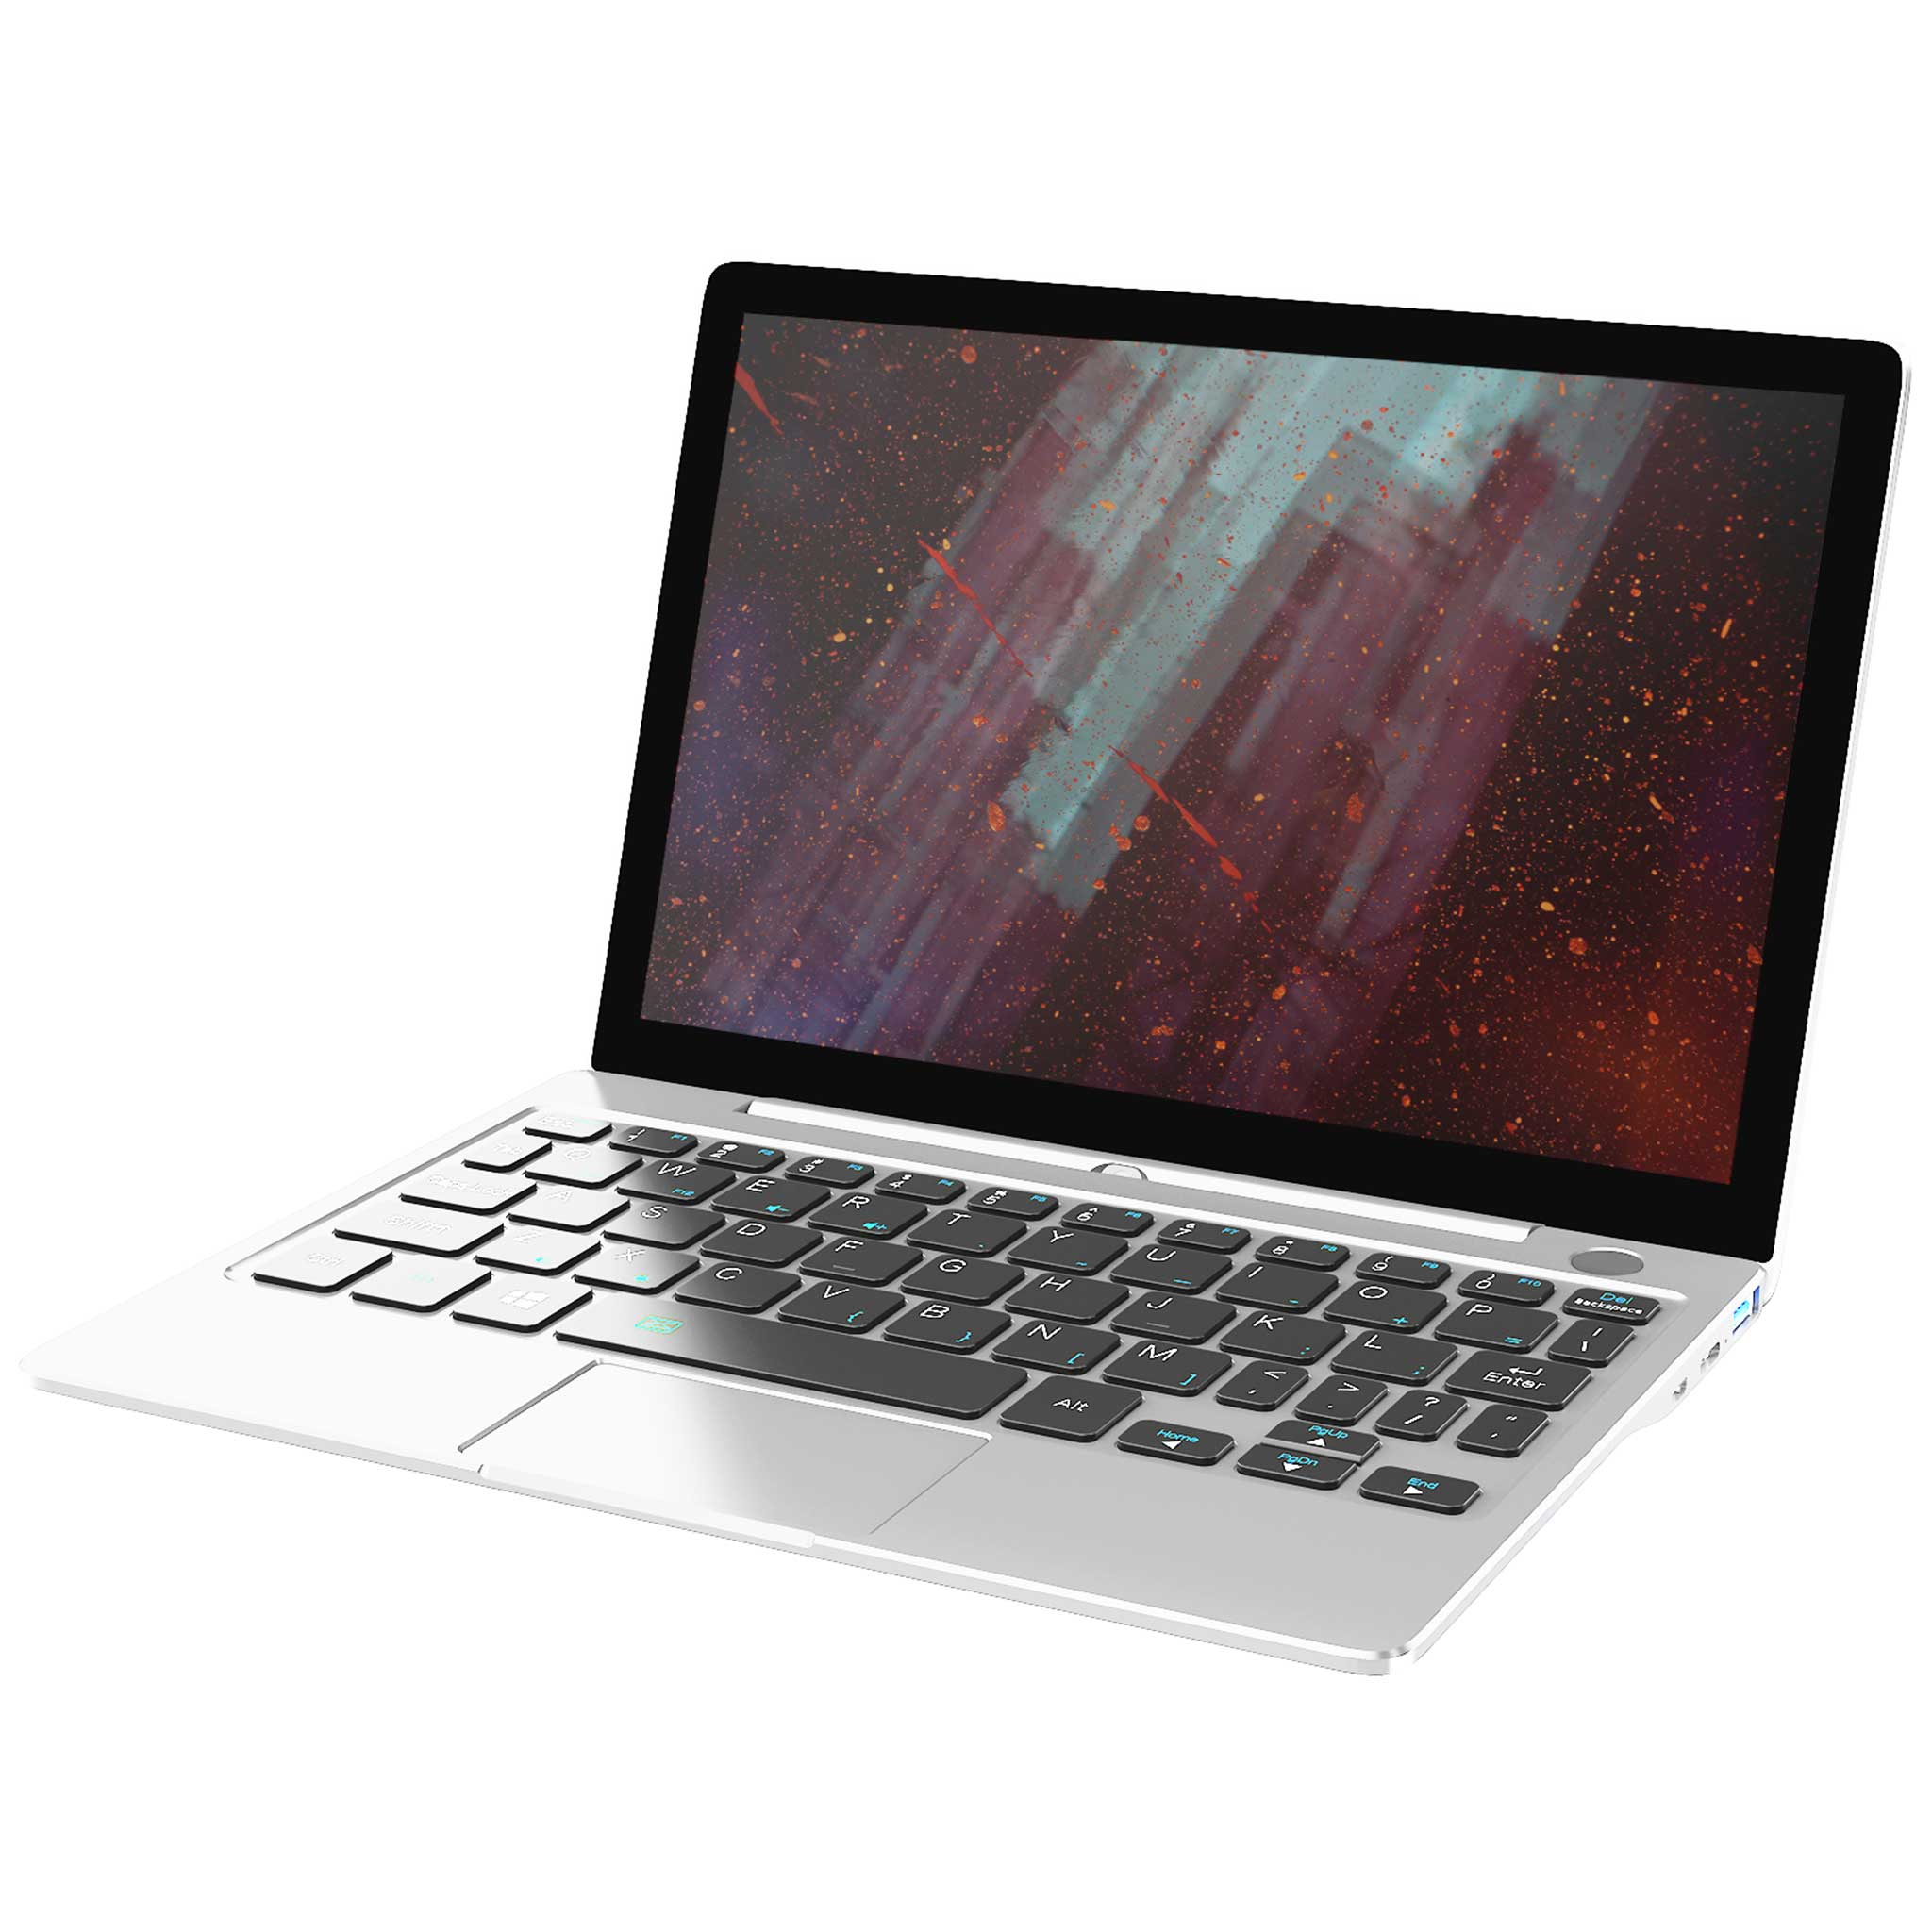 GPD P2 Max Silver Model showing keyboard and display (4115641172022)